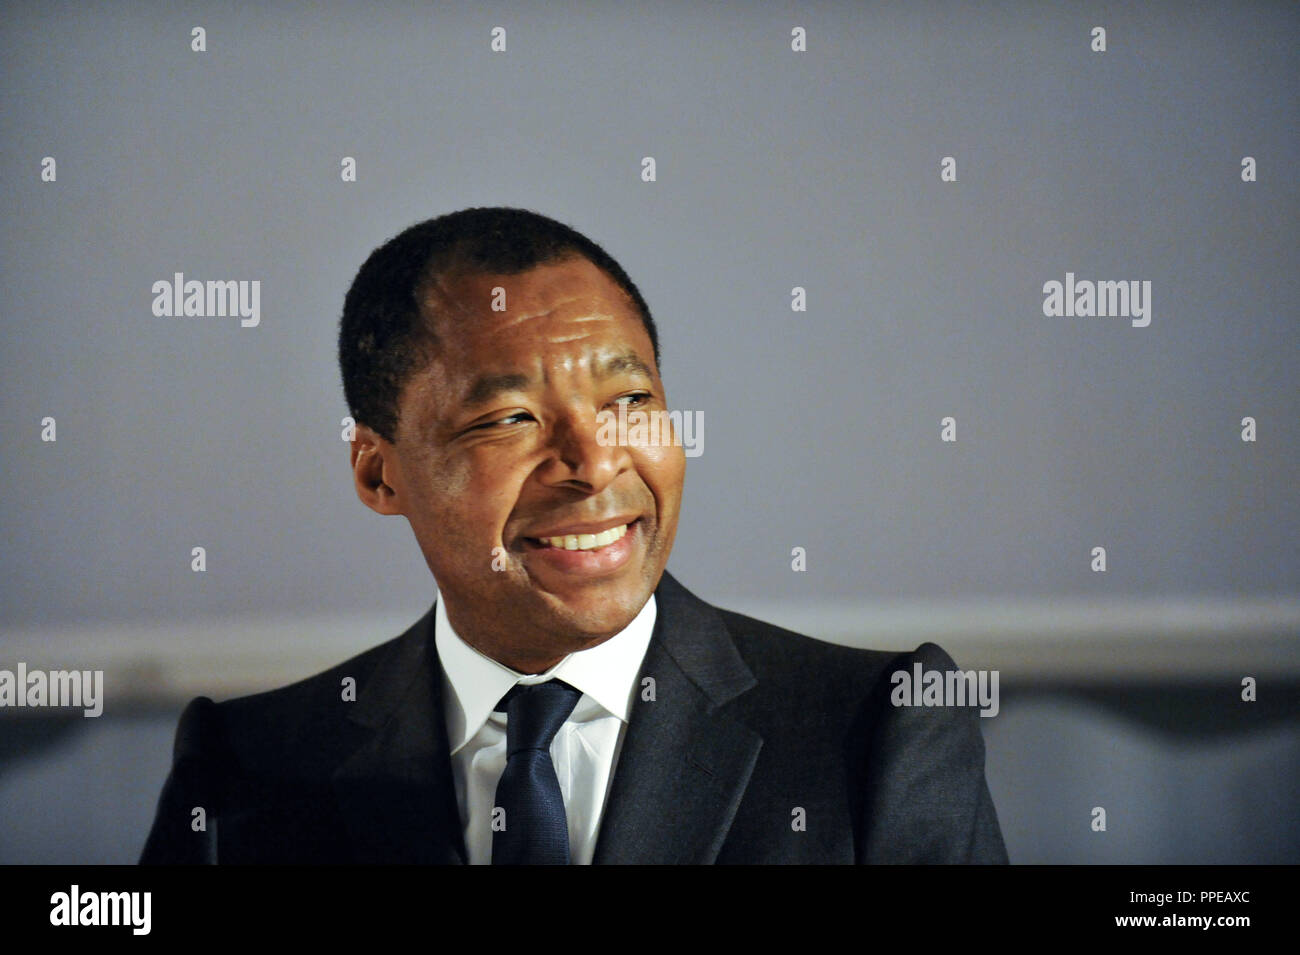 The Nigerian Okwui Enwezor, the designated director of the Haus der Kunst in Munich. The picture shows him at his presentation, eight months before the start of service (01.10.2011). - Stock Image